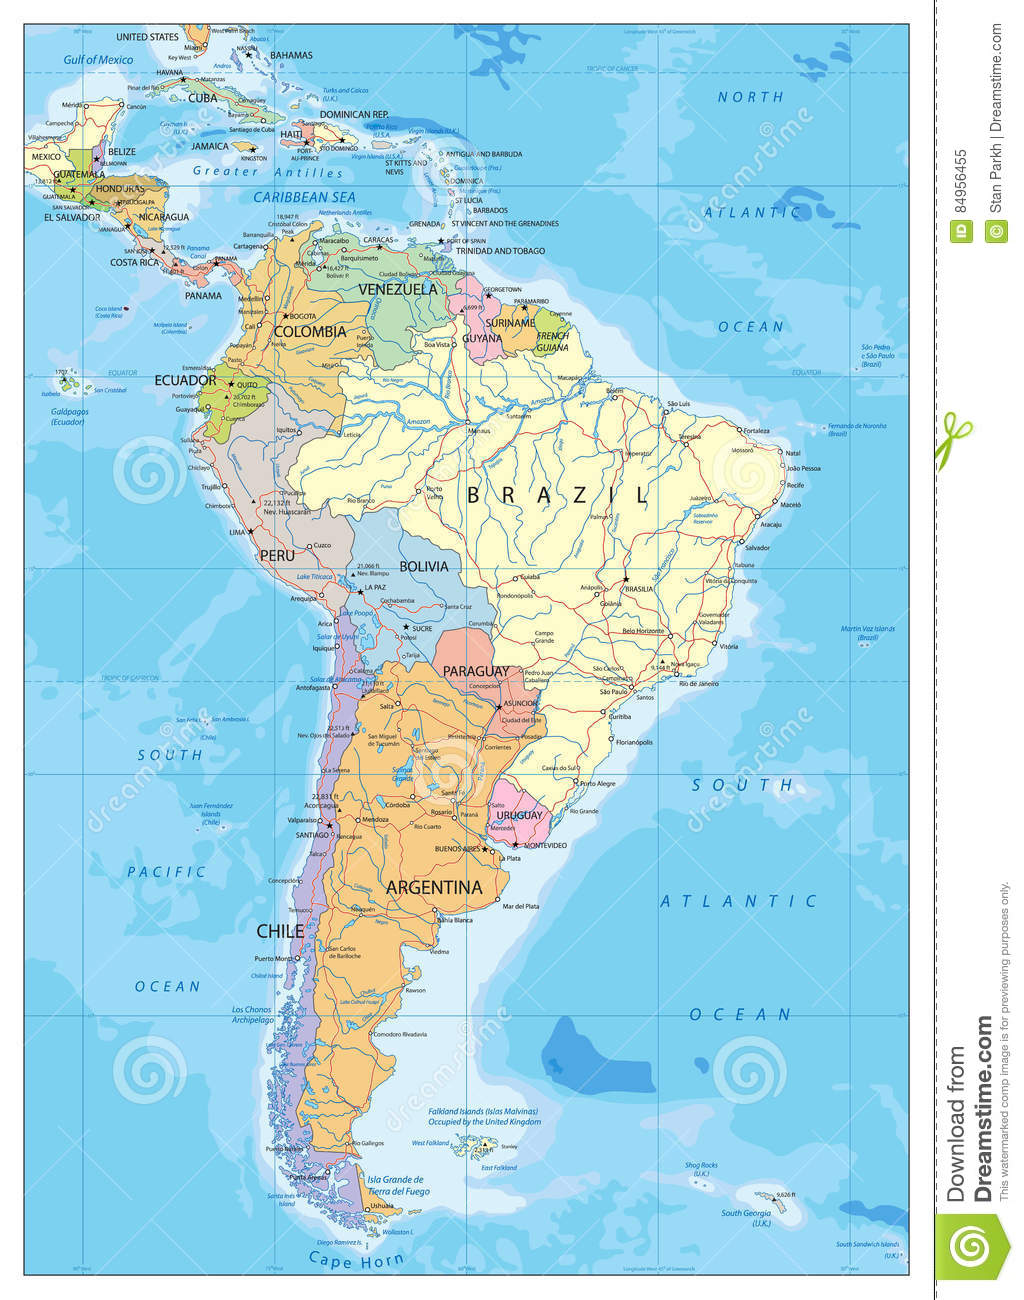 South America Political Map Stock Vector - Illustration of capital ...